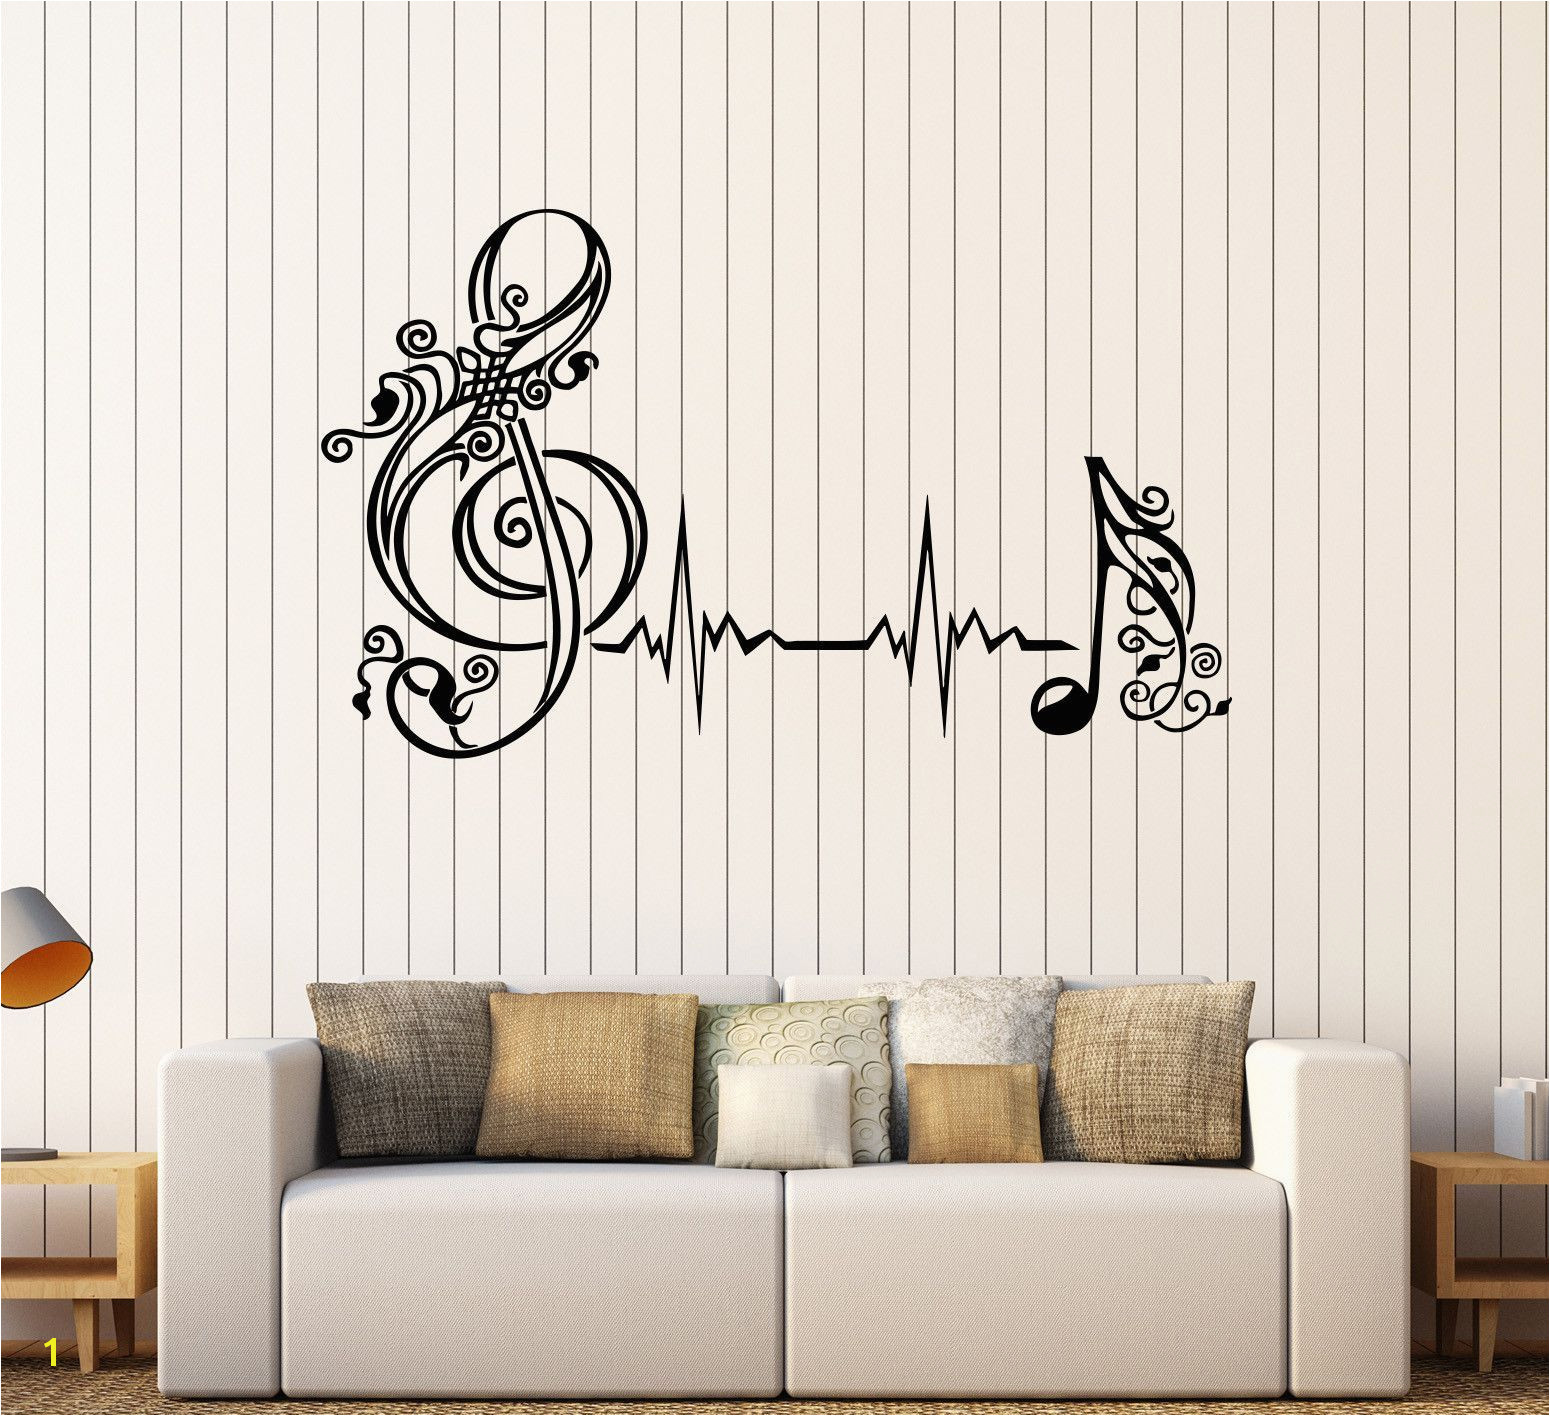 Vinyl Wall Decal Musical Note Heartbeat Pulse Music Art Stickers 530ig